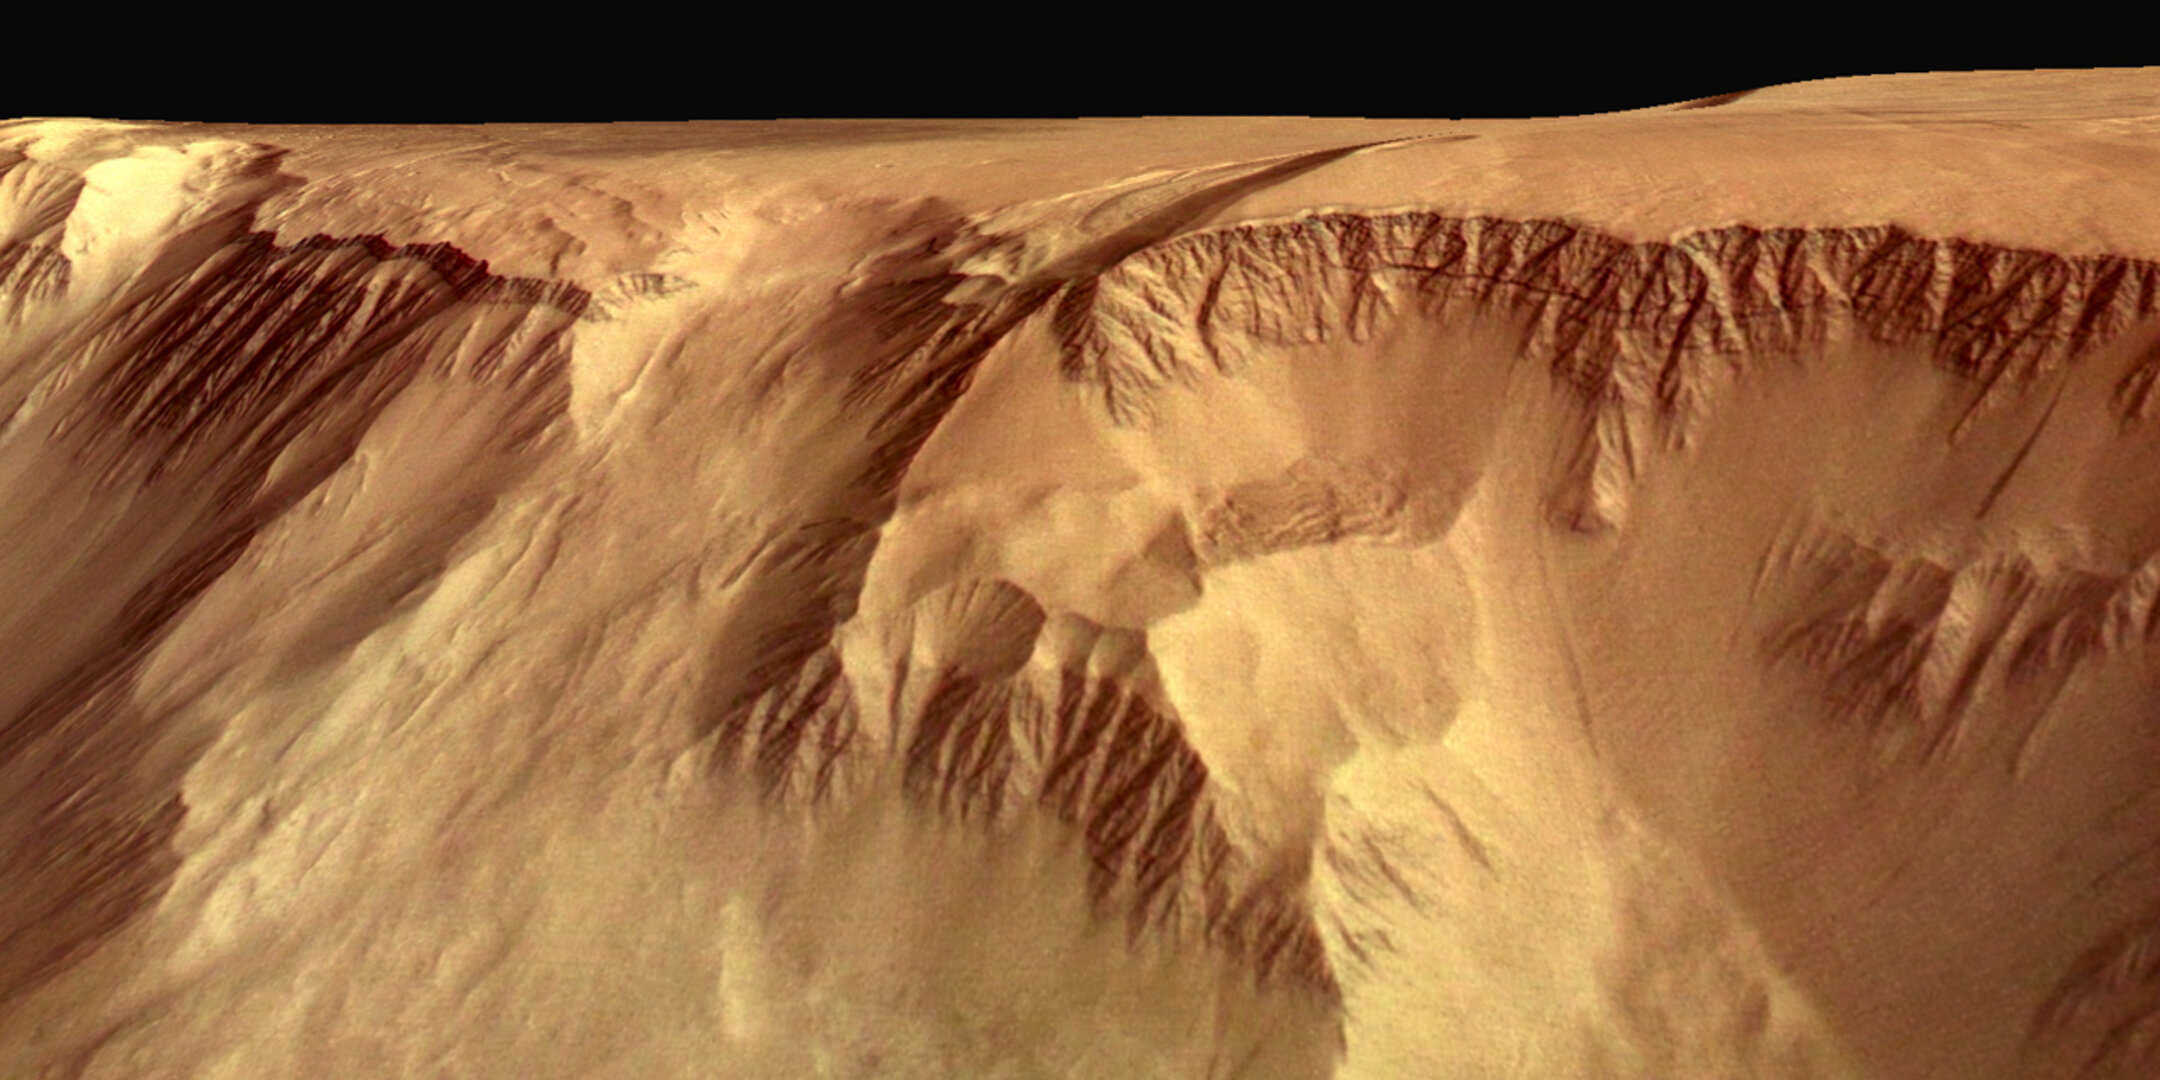 Close-up perspective view of flank of Olympus Mons